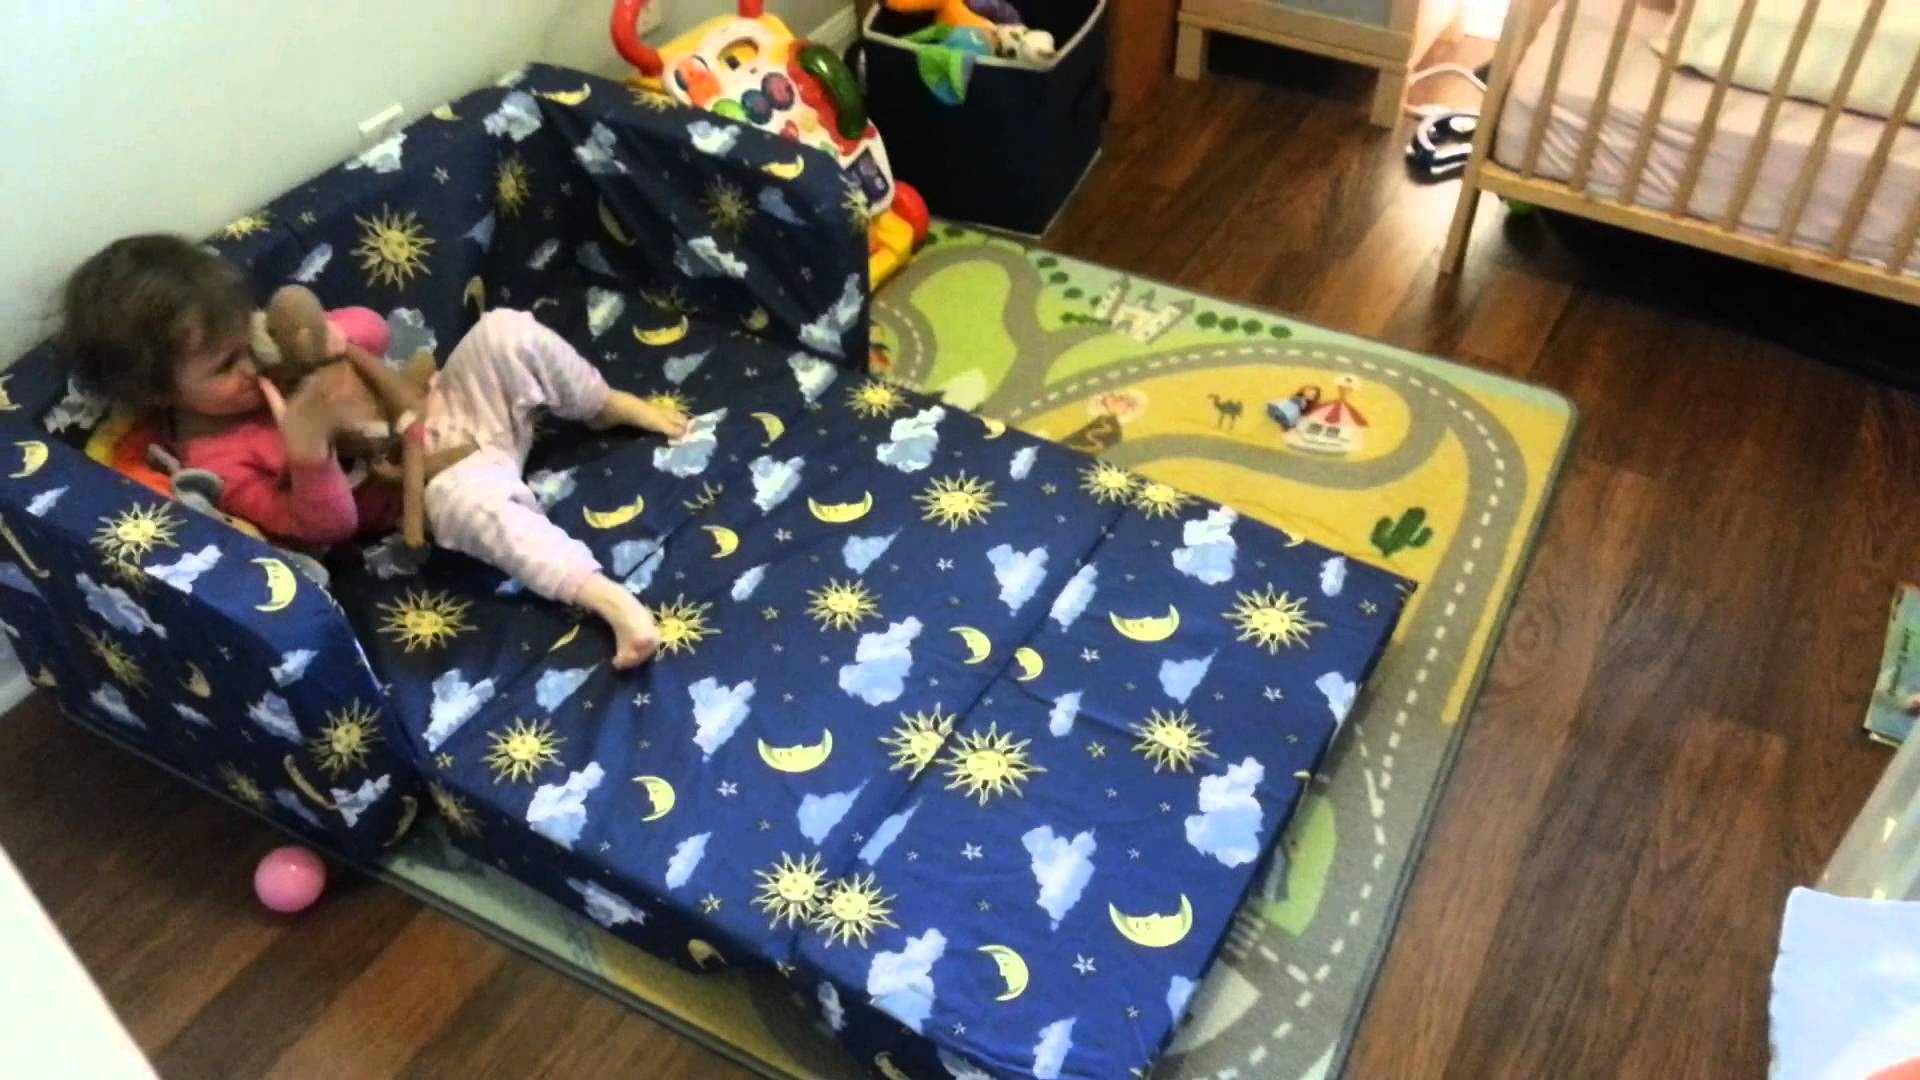 Eloise New Toddler Flip Sofa Pt2 - Youtube for Flip Out Sofa Bed Toddlers (Image 2 of 30)